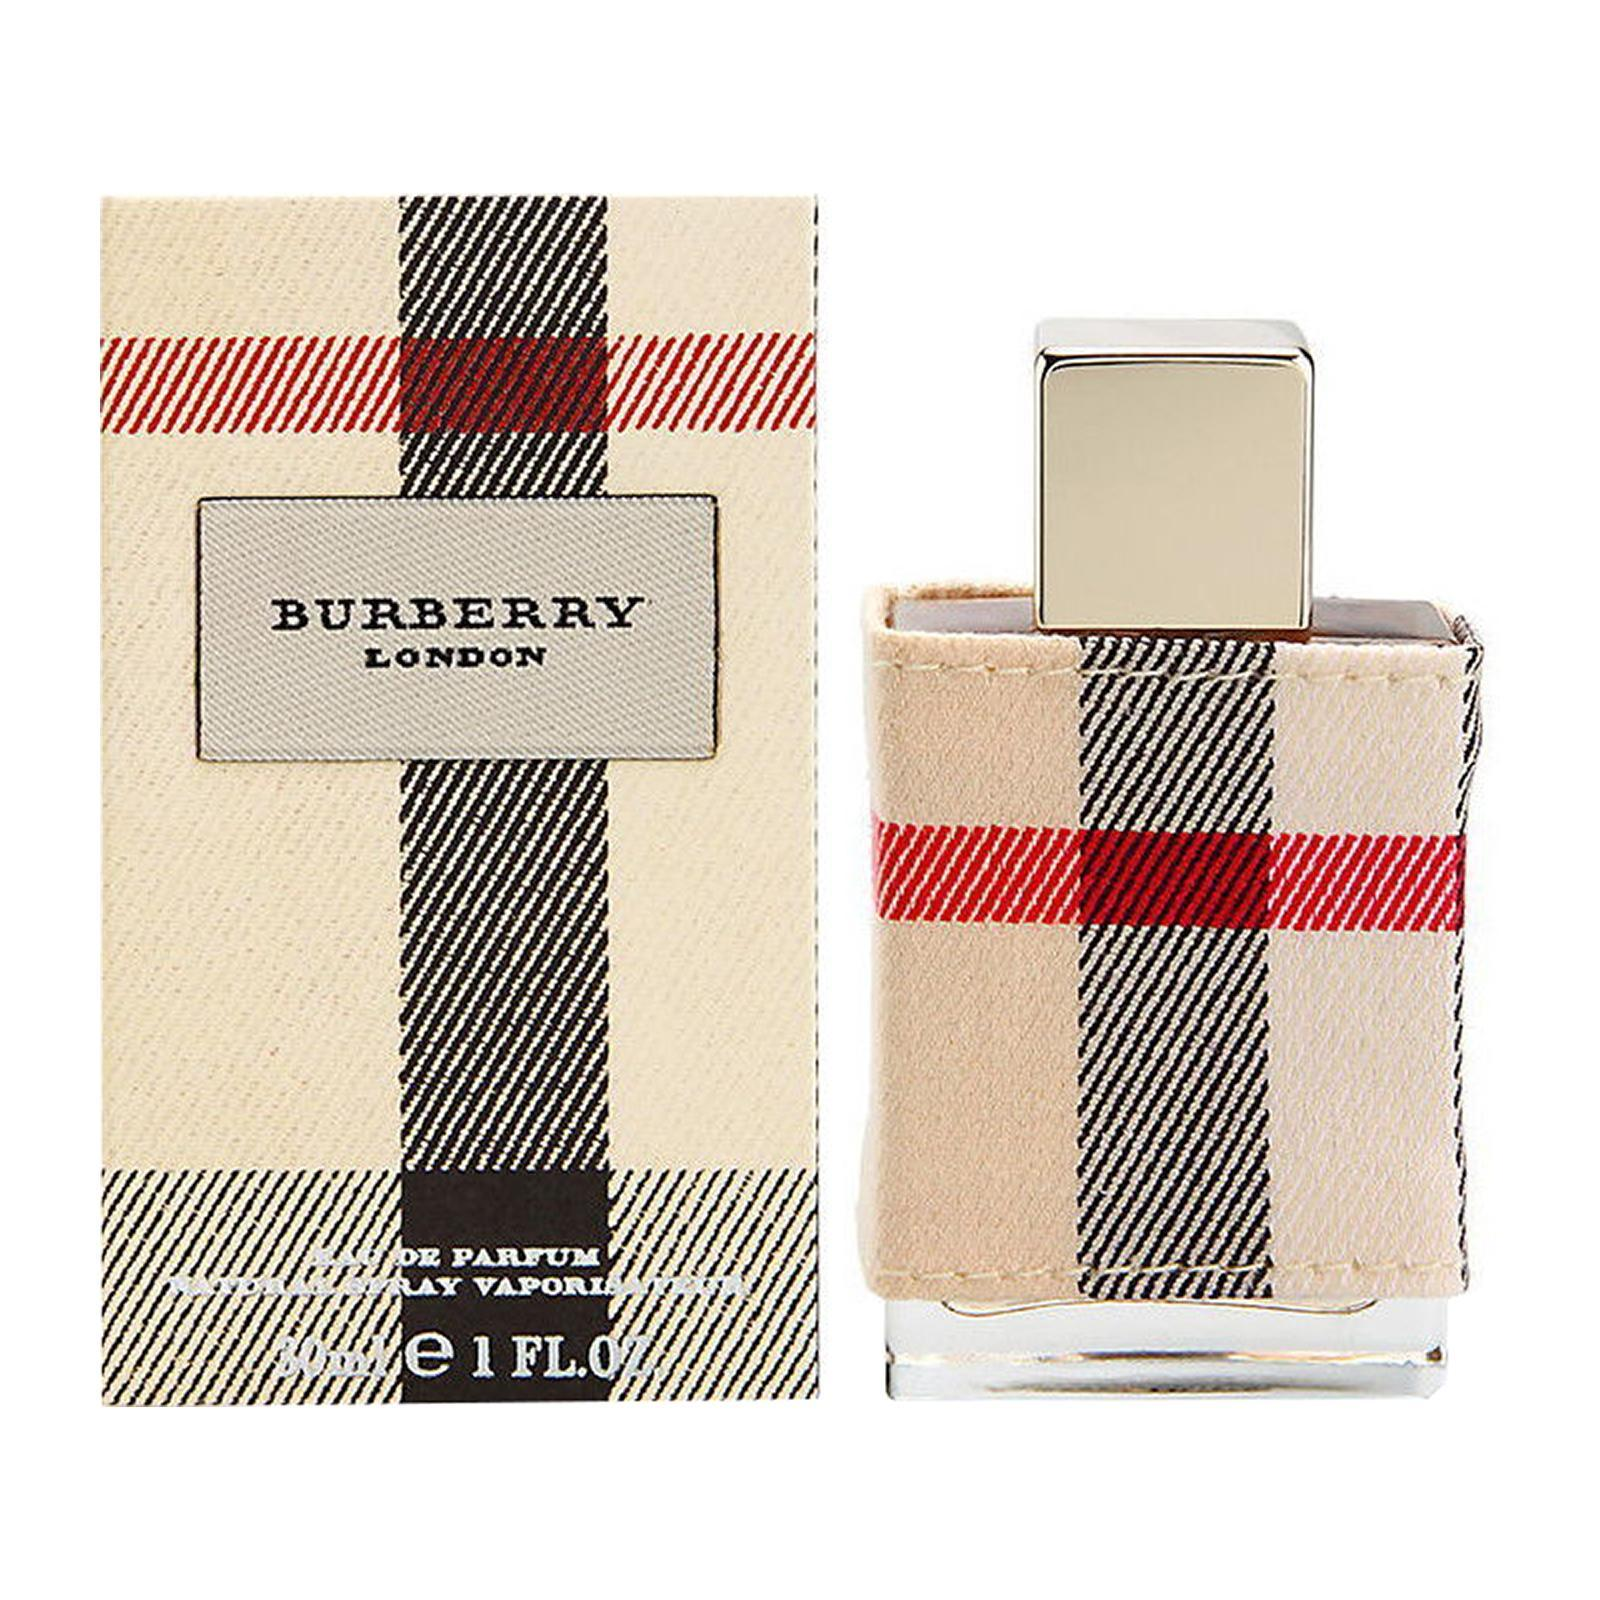 Burberry London For Women Eau De Parfum Perfume Fragrance Spray - By BEAULUXLAB